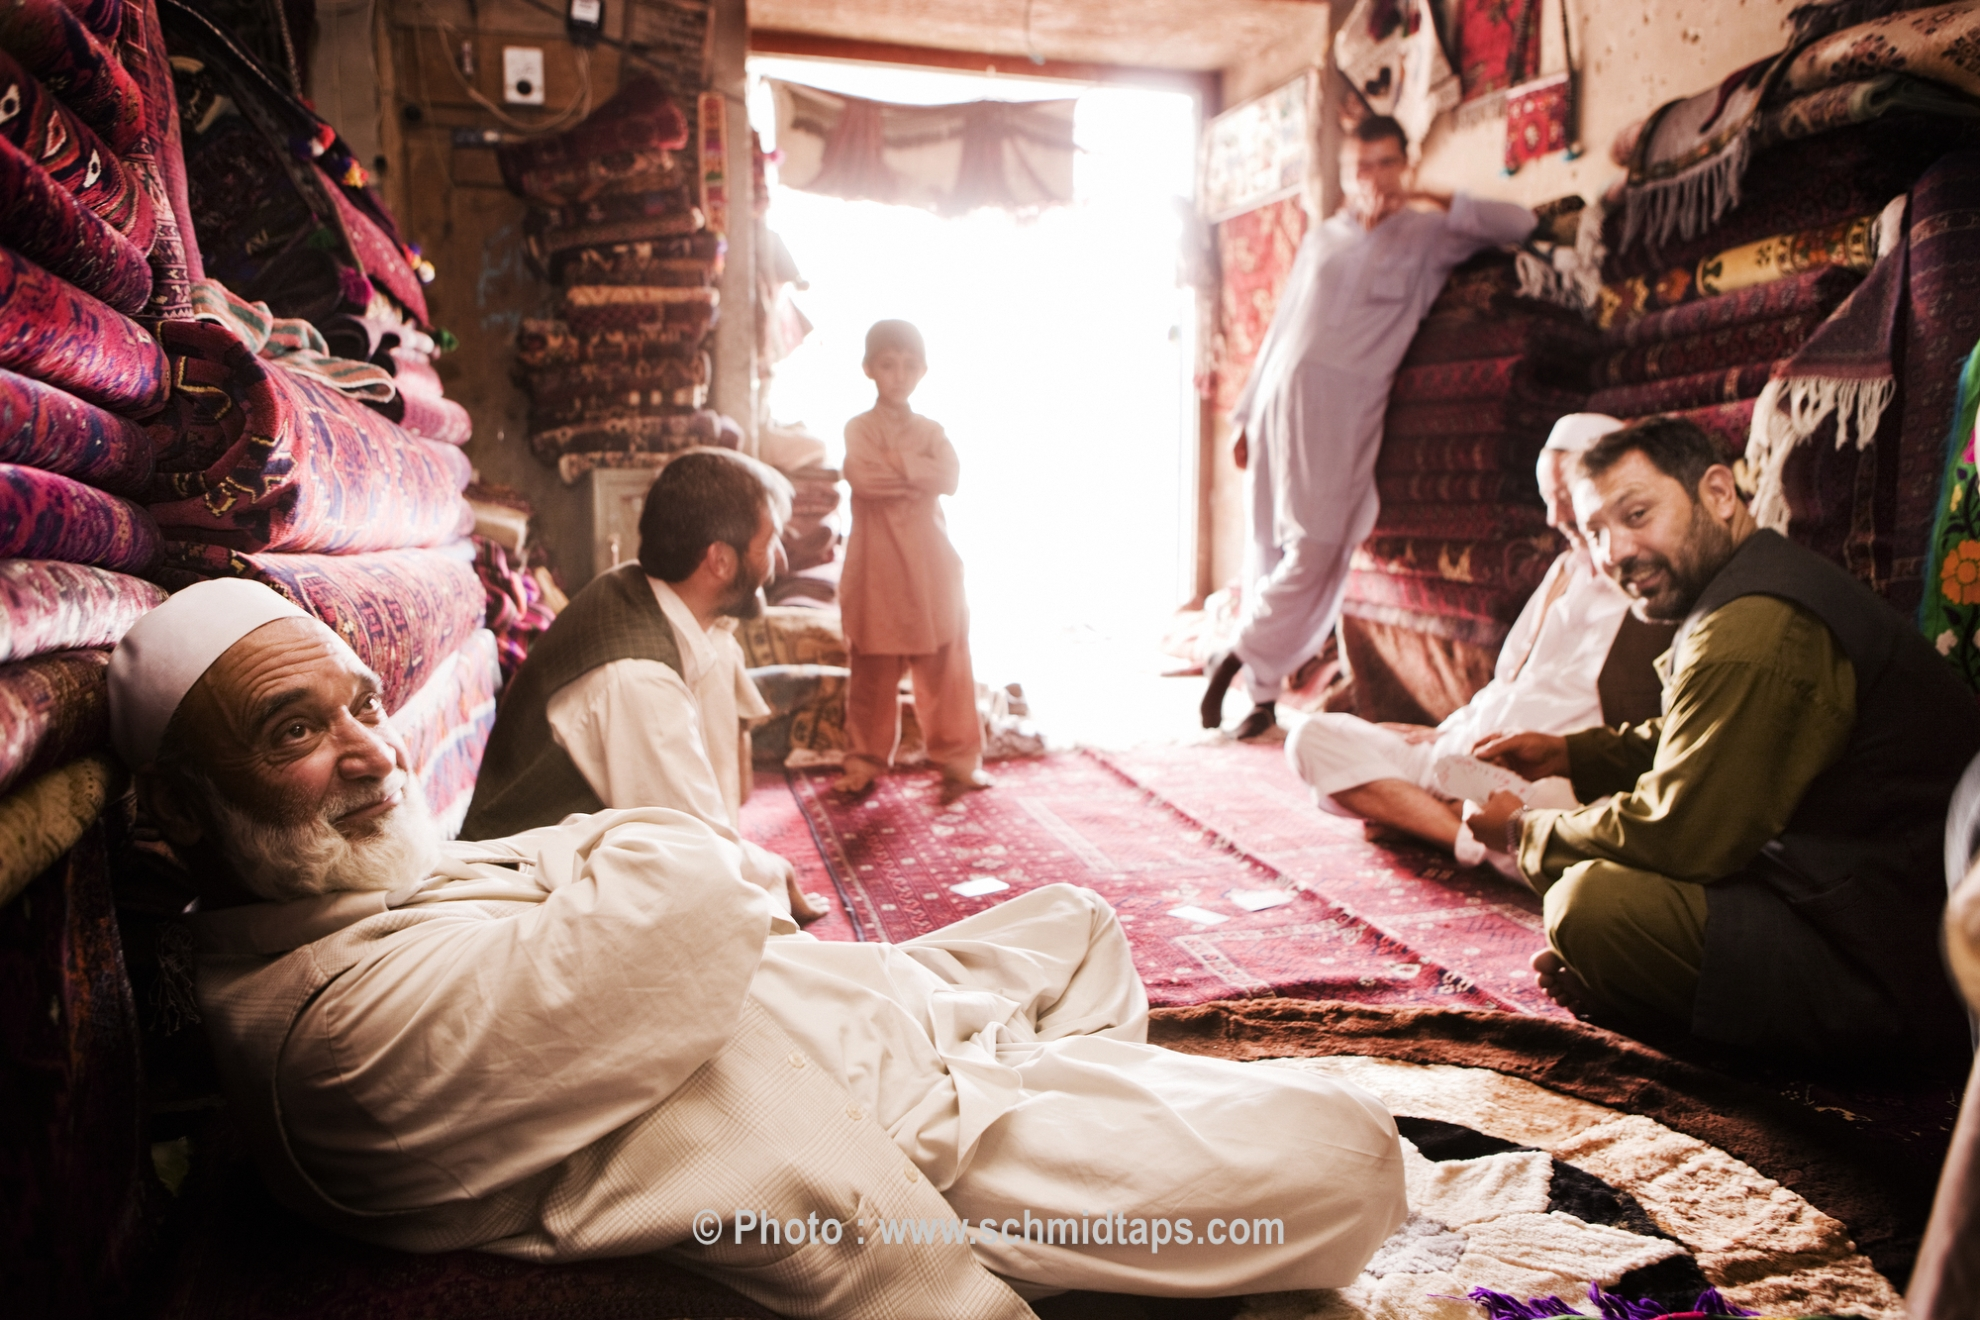 Men and boys relaxing in a carpet shop. Photo: Lars Schmidt, 2010-'13